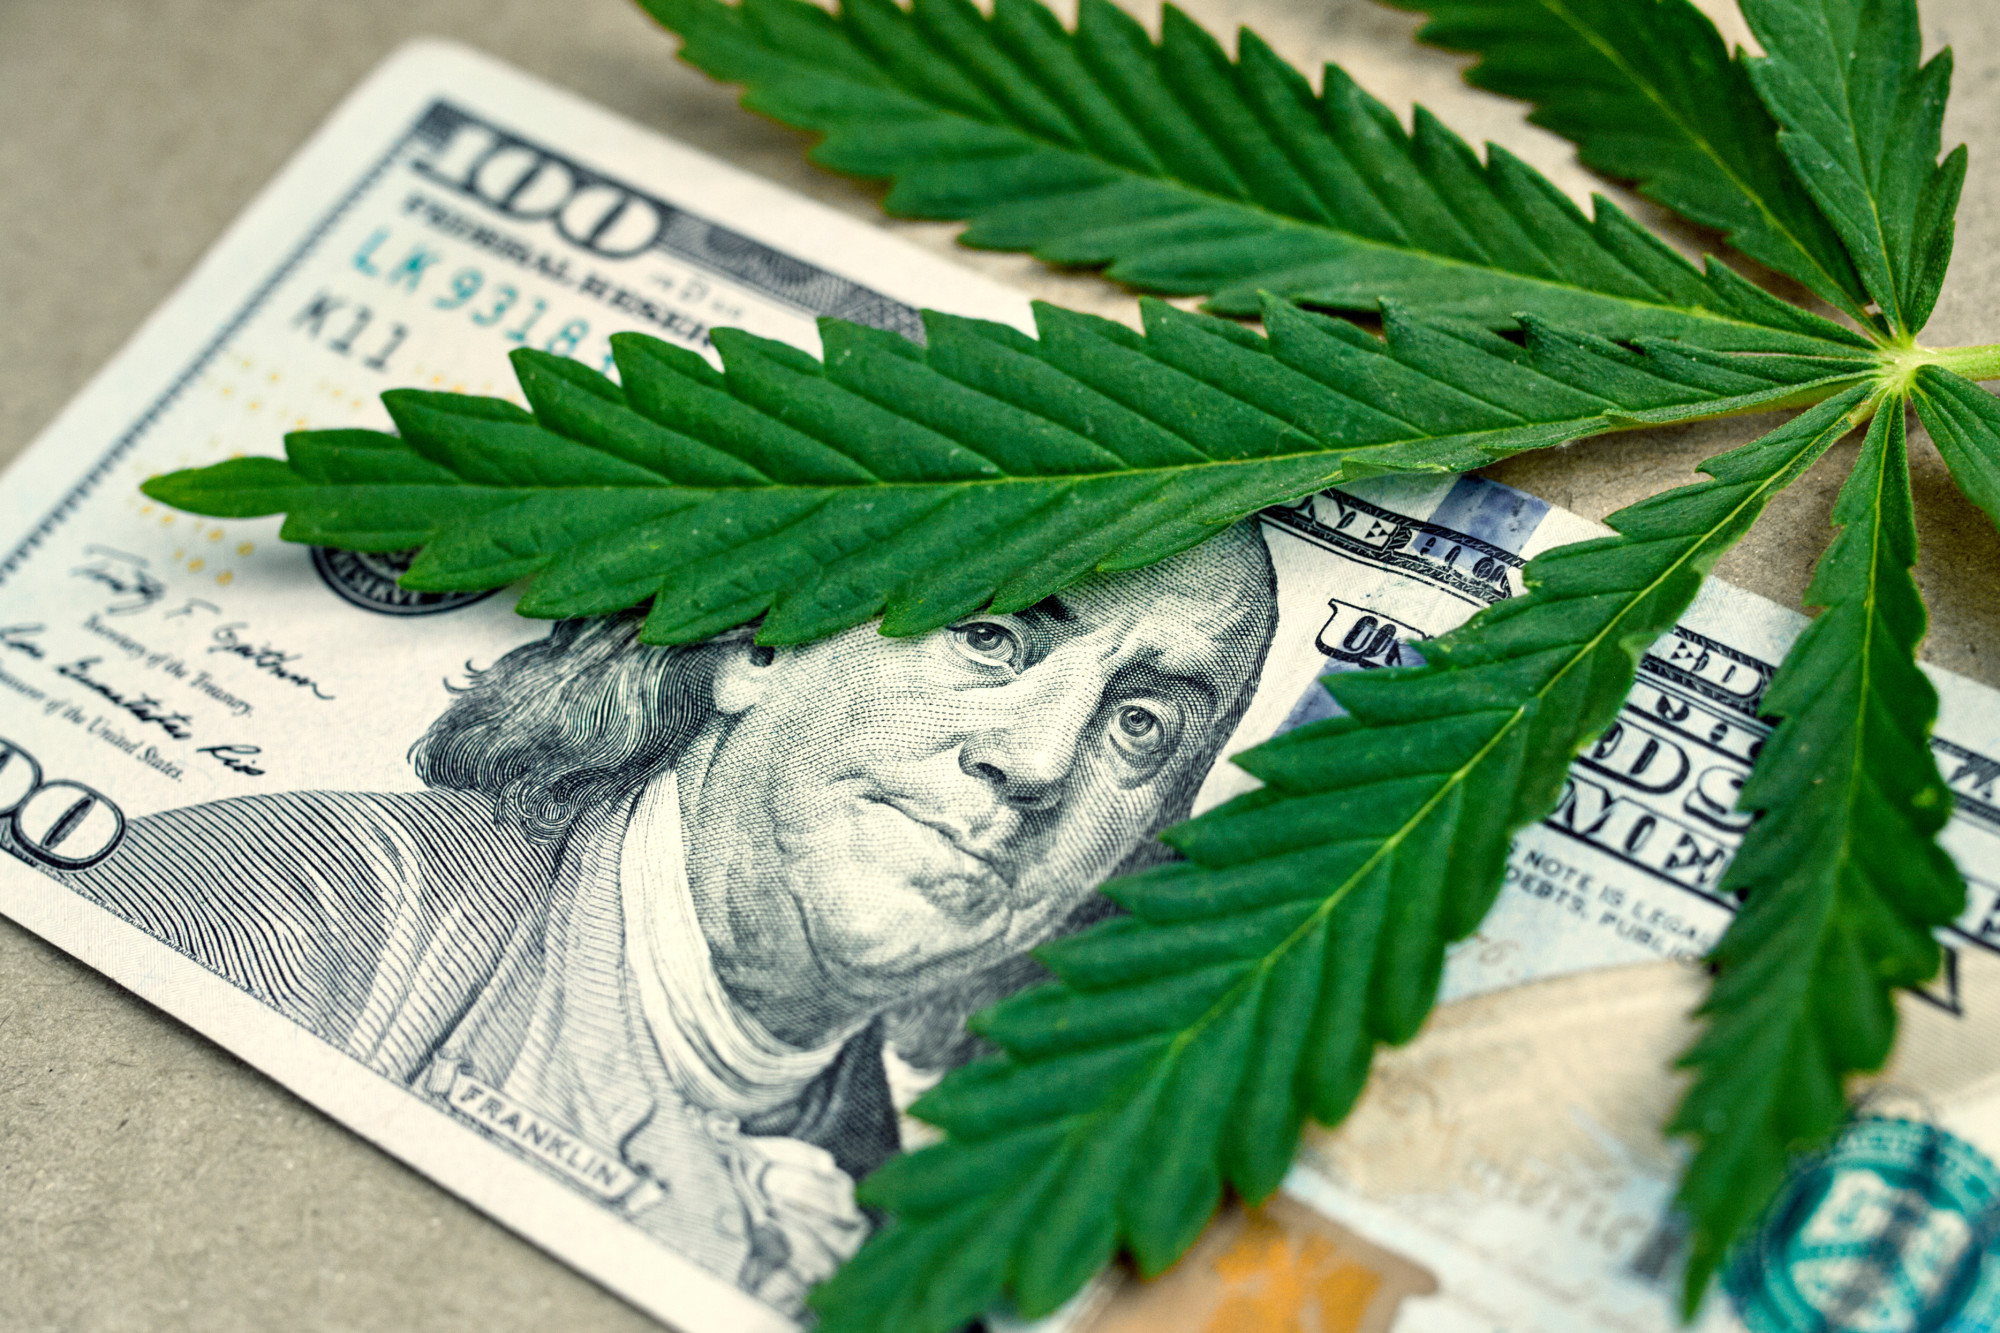 Breaking Into The Industry 10 Cannabis Business Ideas To Get Started